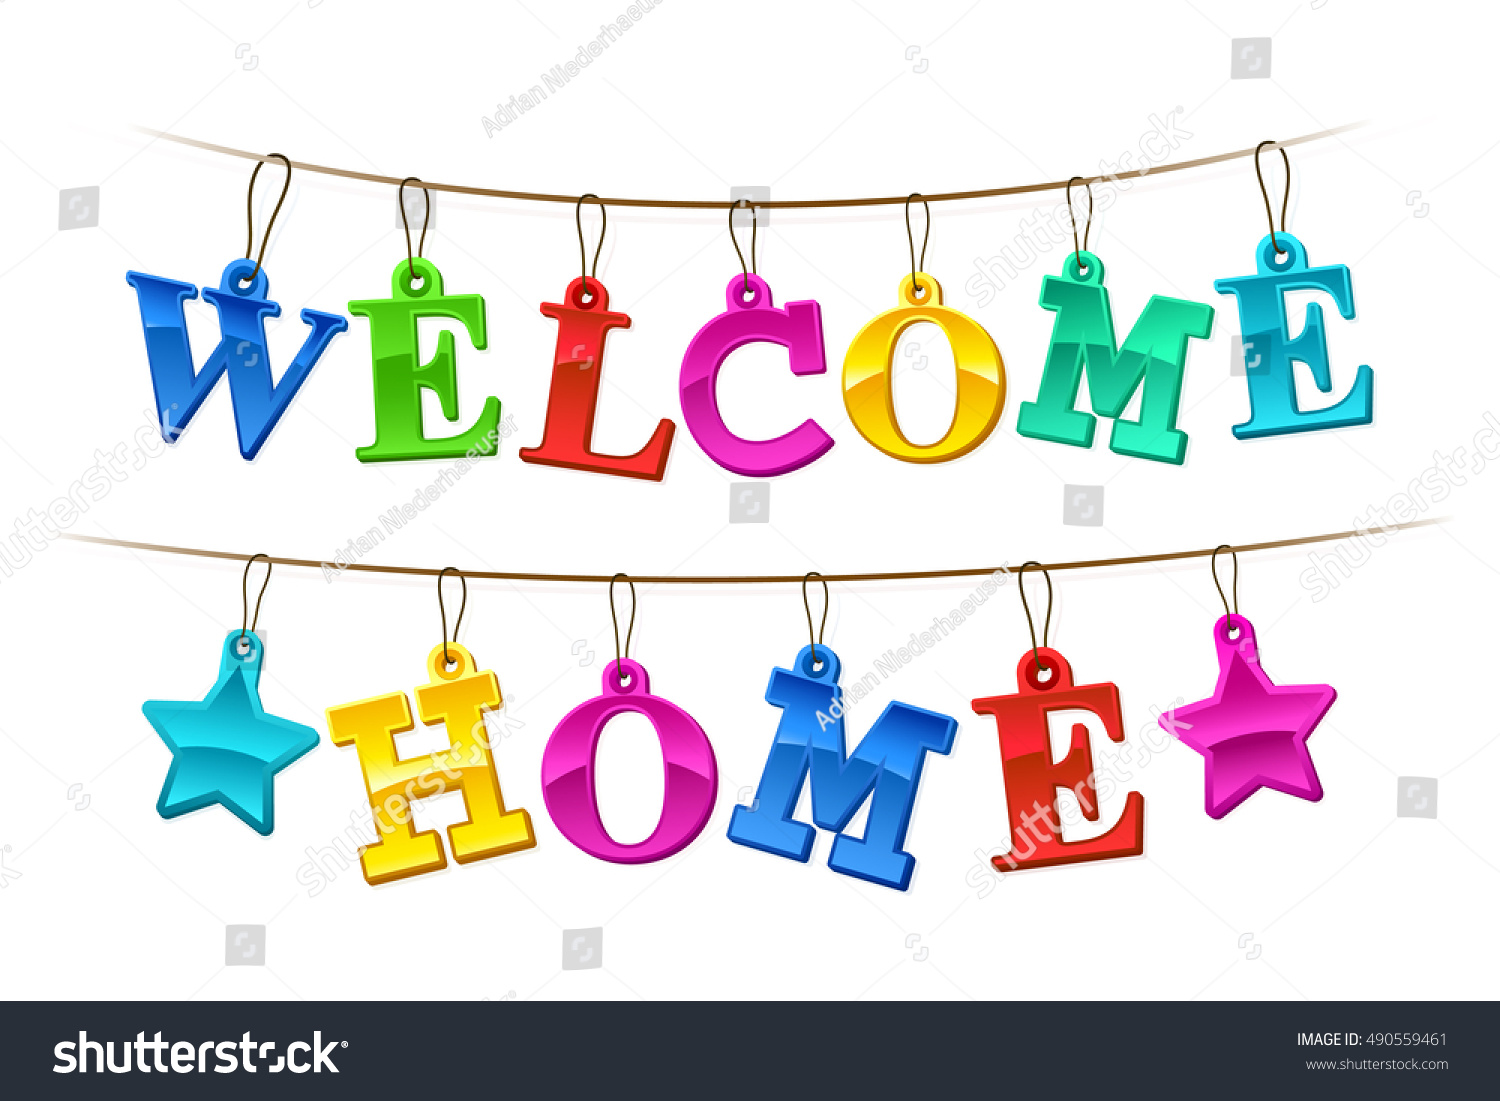 Colorful Welcome Home Banner Letters Design Stock Vector 490559461 ...